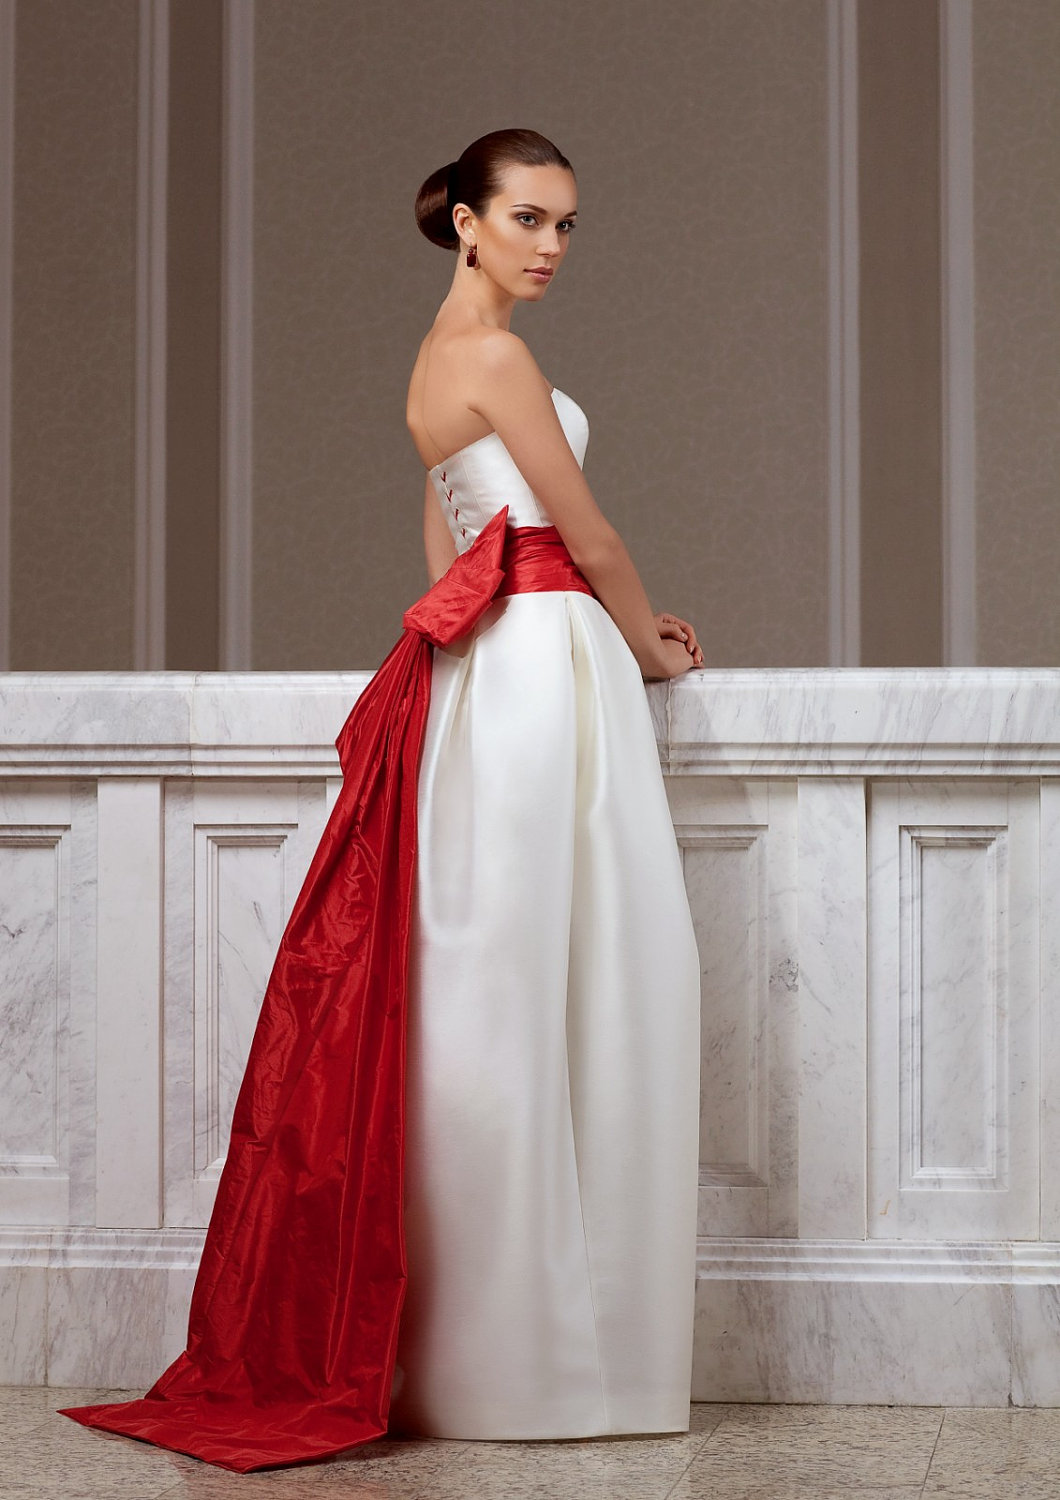 Red Sash On Wedding Dress Meaning: Rolling flower sweetheart ...